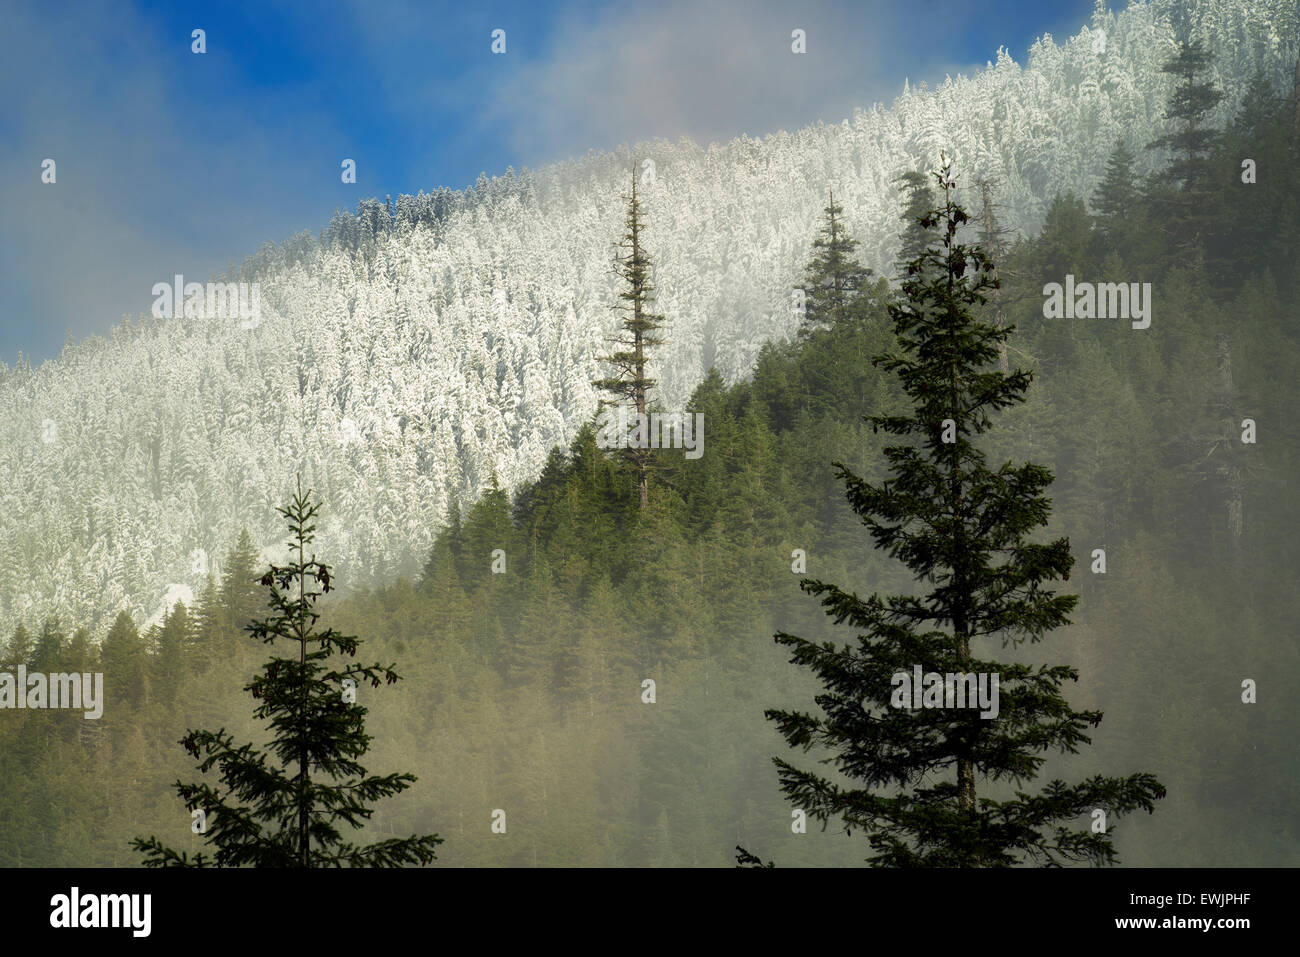 First snow in mountains near Opal Creek. Oregon Cascade Mountains. - Stock Image